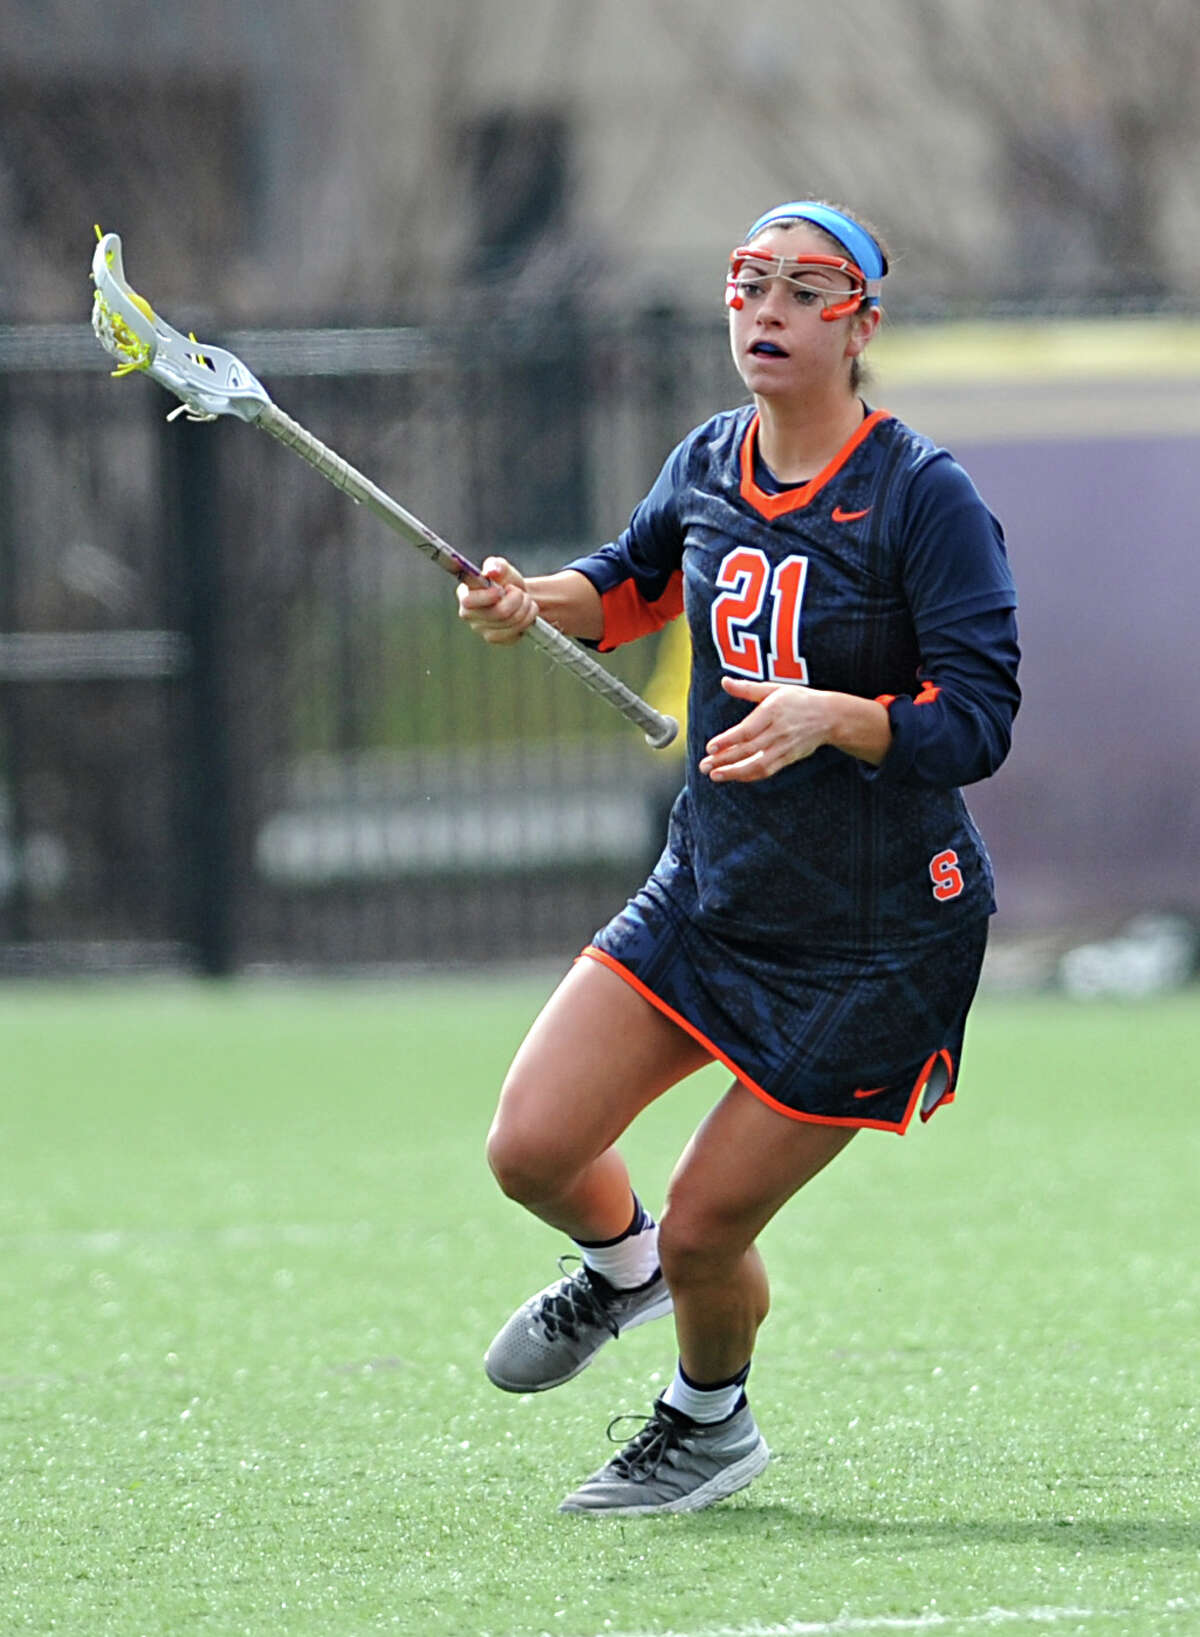 Kayla Treanor, a Niskayuna native, was a star at Syracuse and was introduced as the Syracuse women's lacrosse head coach on Wednesday.